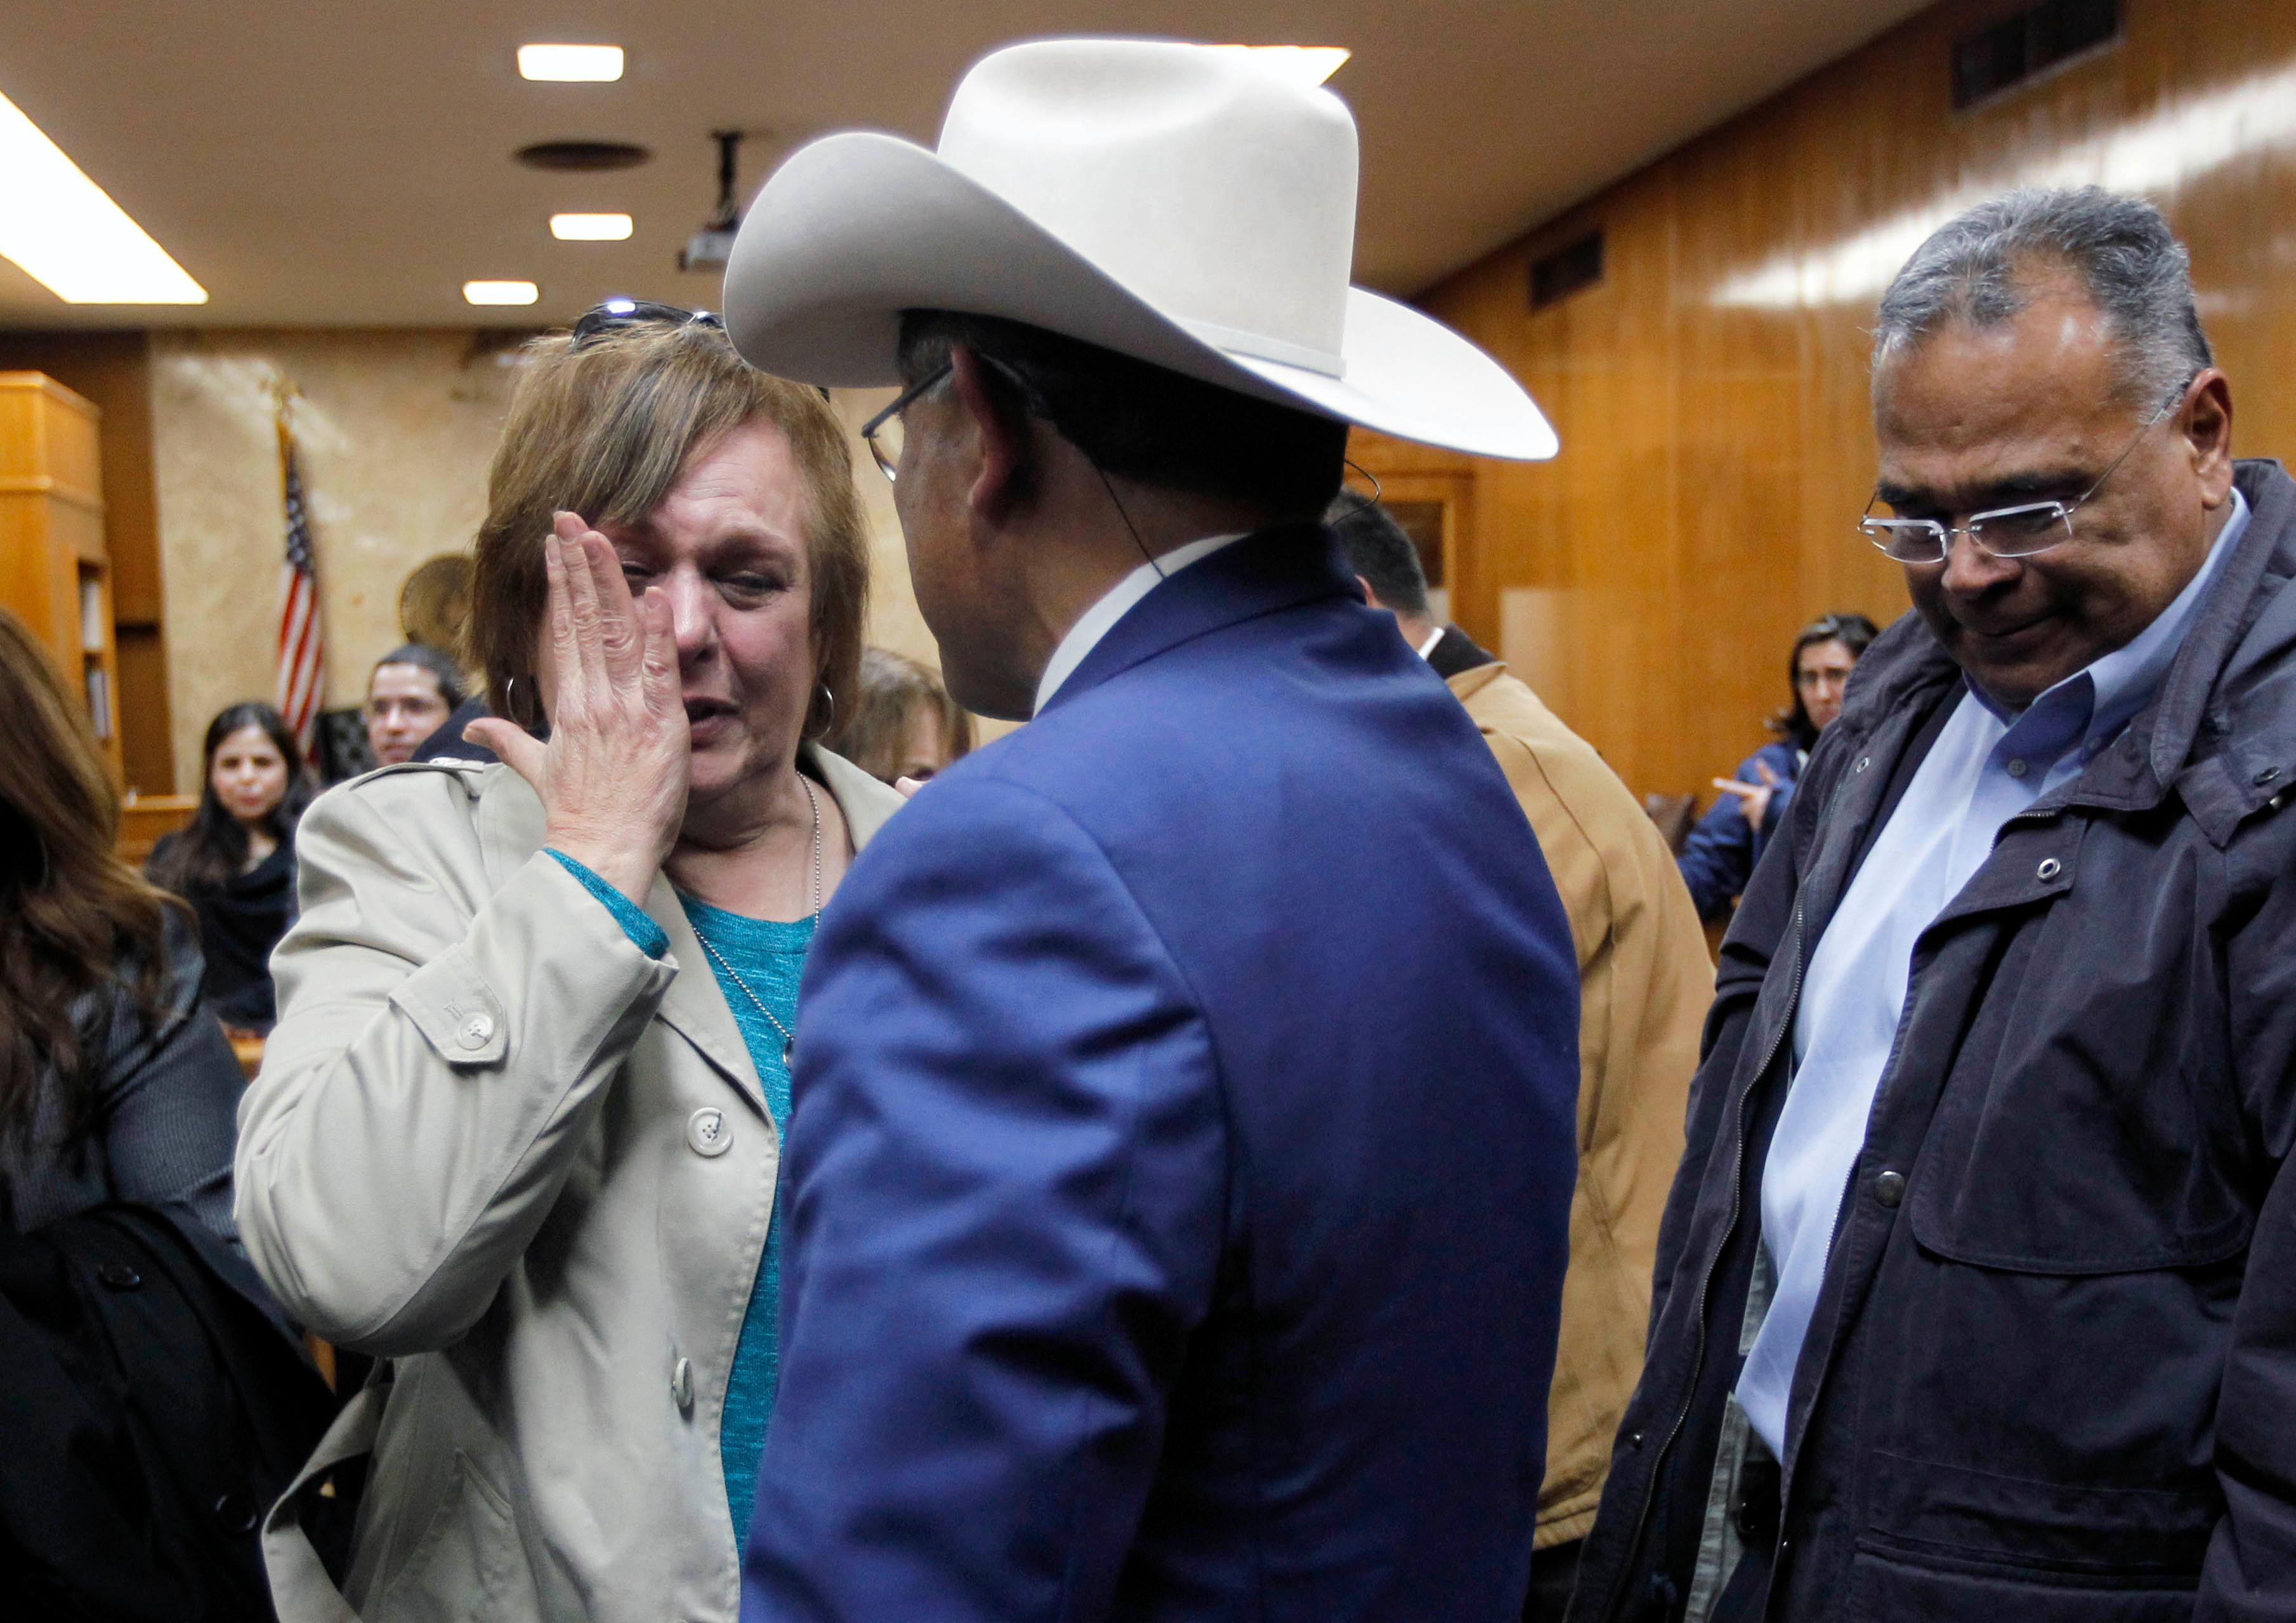 Noemi Sigler cries while talking with Texas Ranger Rudy Jaramillo, center, following the guilty verdict in John Bernard Feit's trial for the 1960 murder of Irene Garza in the 92nd state District Court Thursday, December 7, 2017, at the Hidalgo County Courthouse in Edinburg. Sigler is a relative of Irene Garza, Jaramillo worked on the Garza case before it was brought to trial.  (Nathan Lambrecht/The Monitor/Pool)